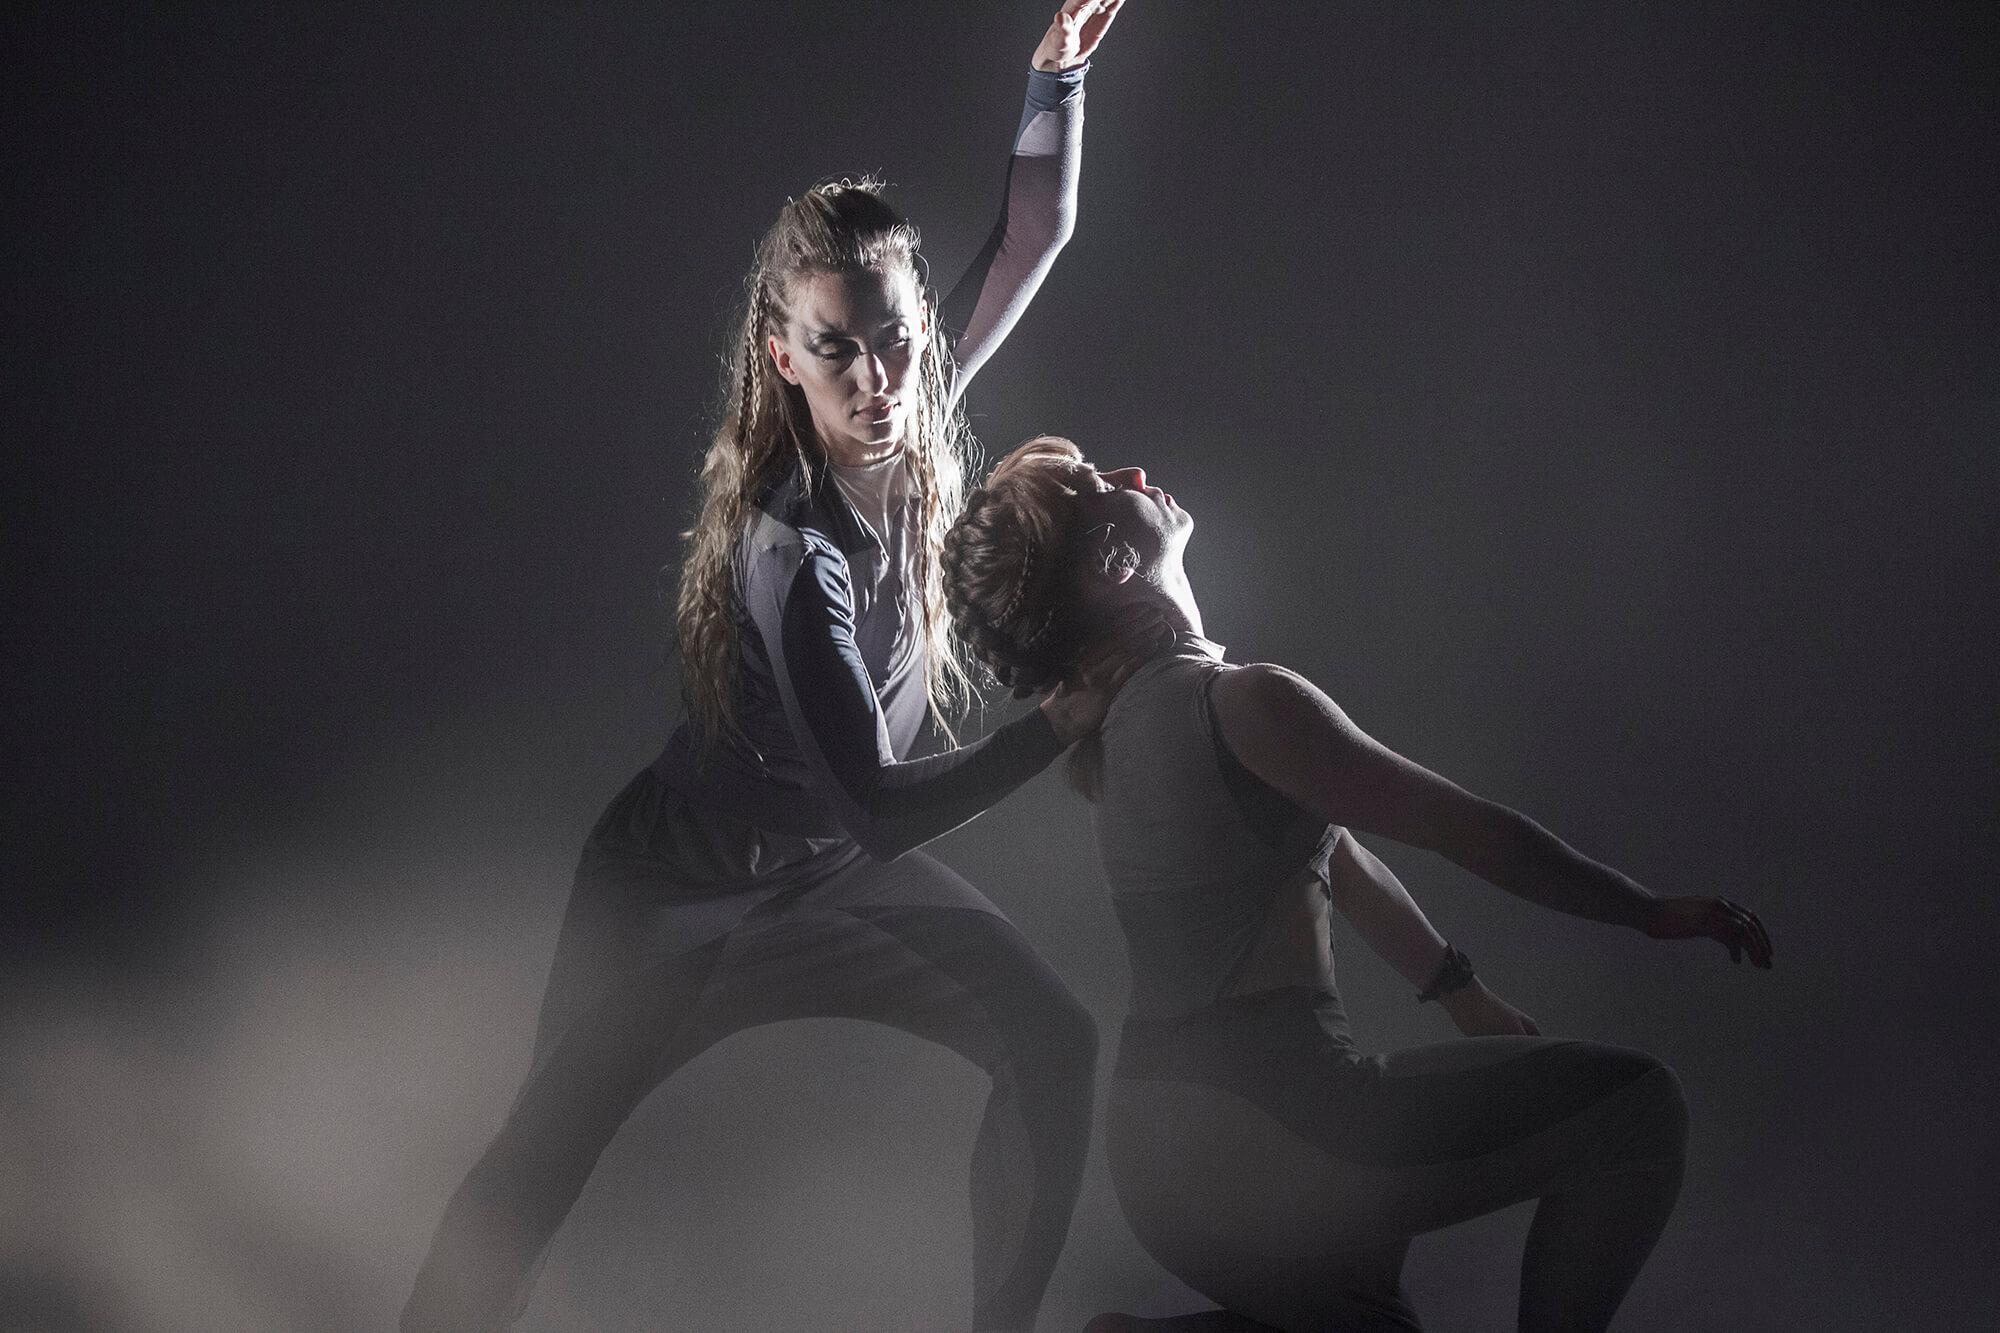 A standing dancer holds a kneeling dancer by the back of the neck. The stage is misty. Photo: Richard Richards